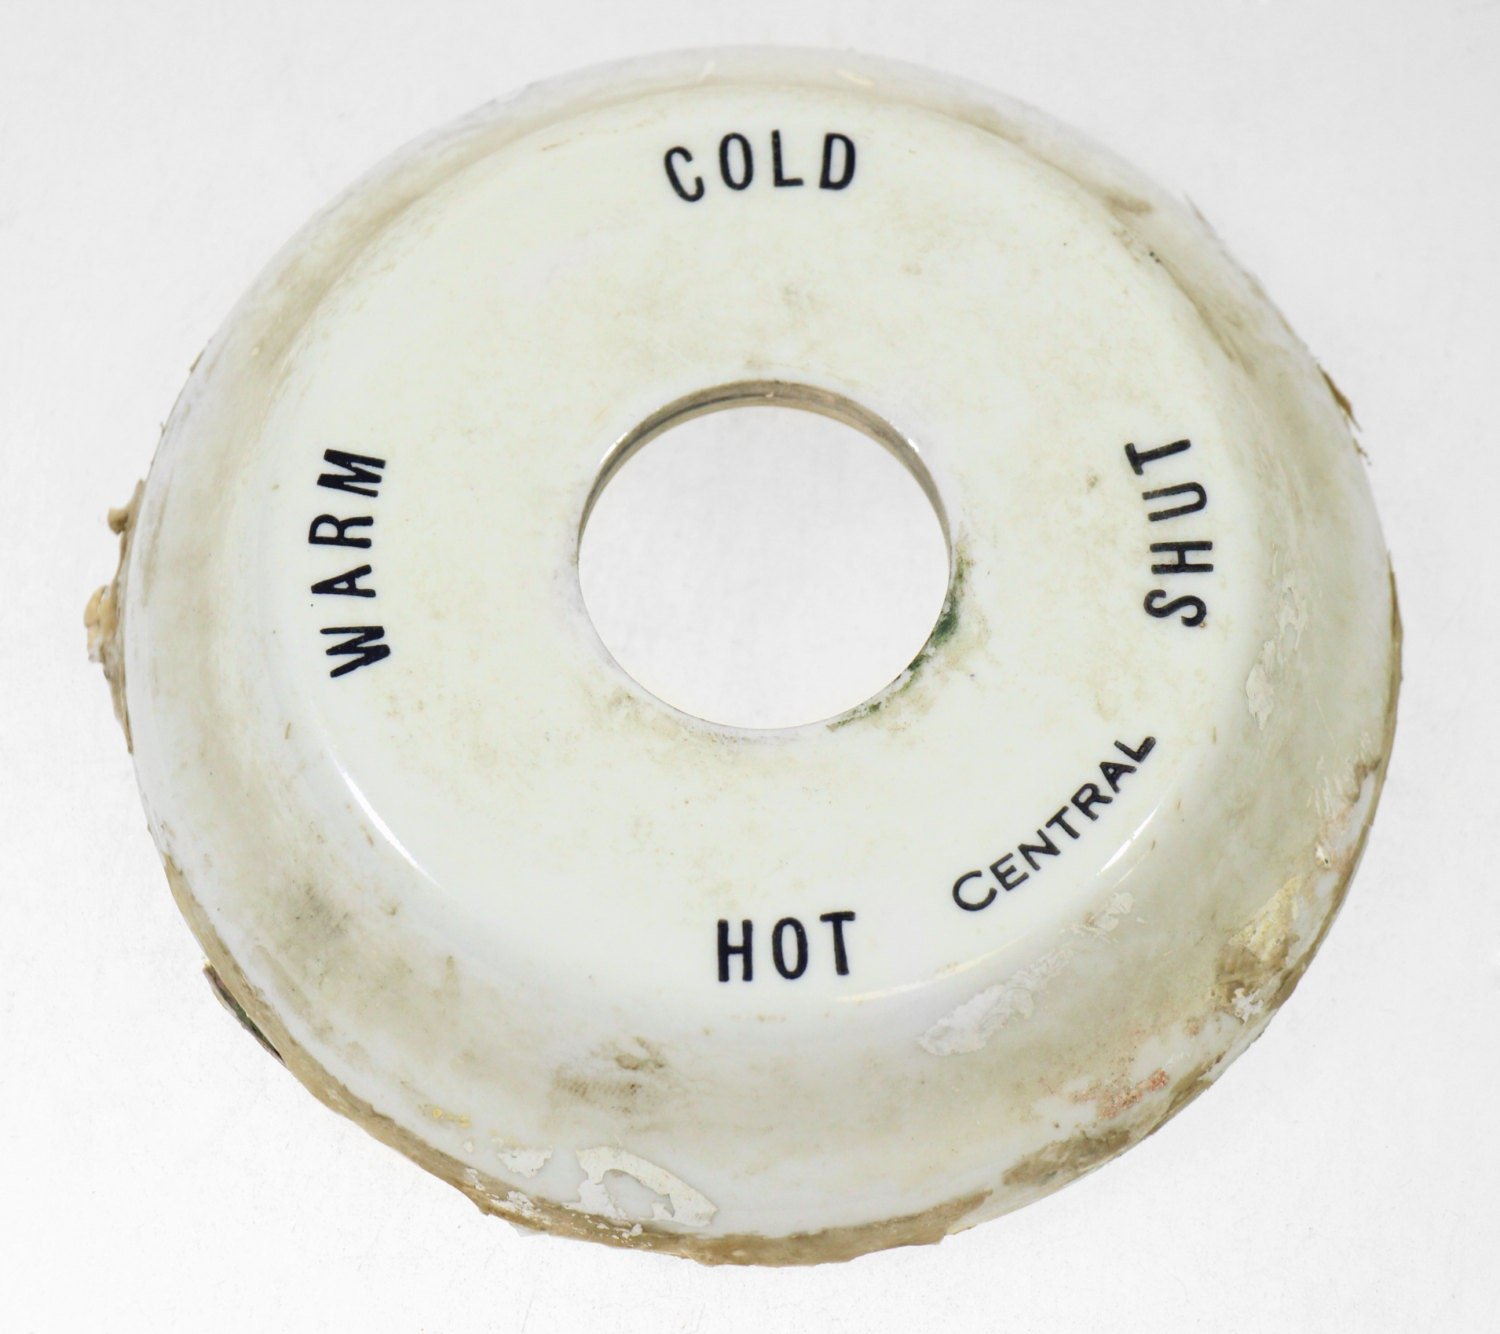 Central Porcelain Hot & Cold Indicator By Oldegoodthings